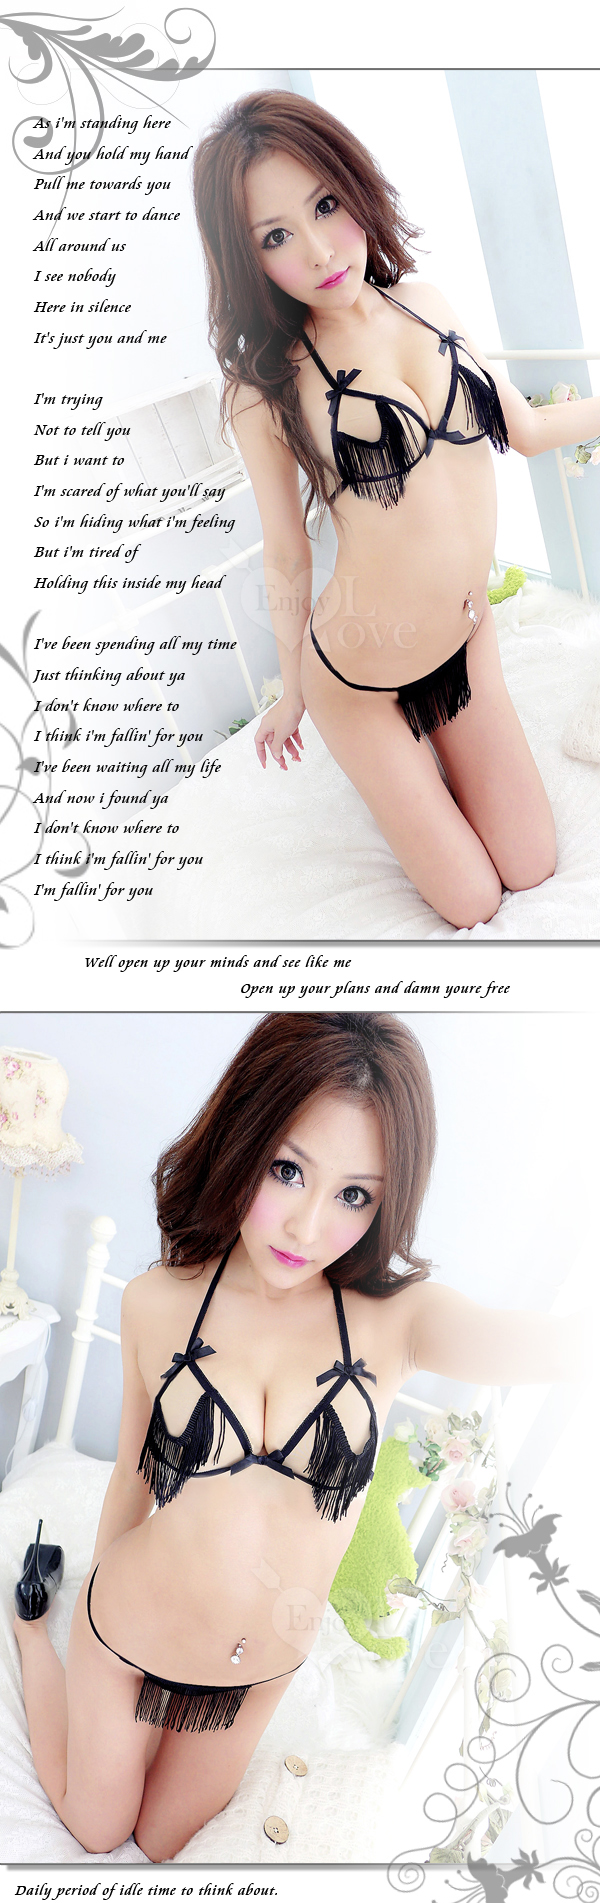 yisiting 依思婷